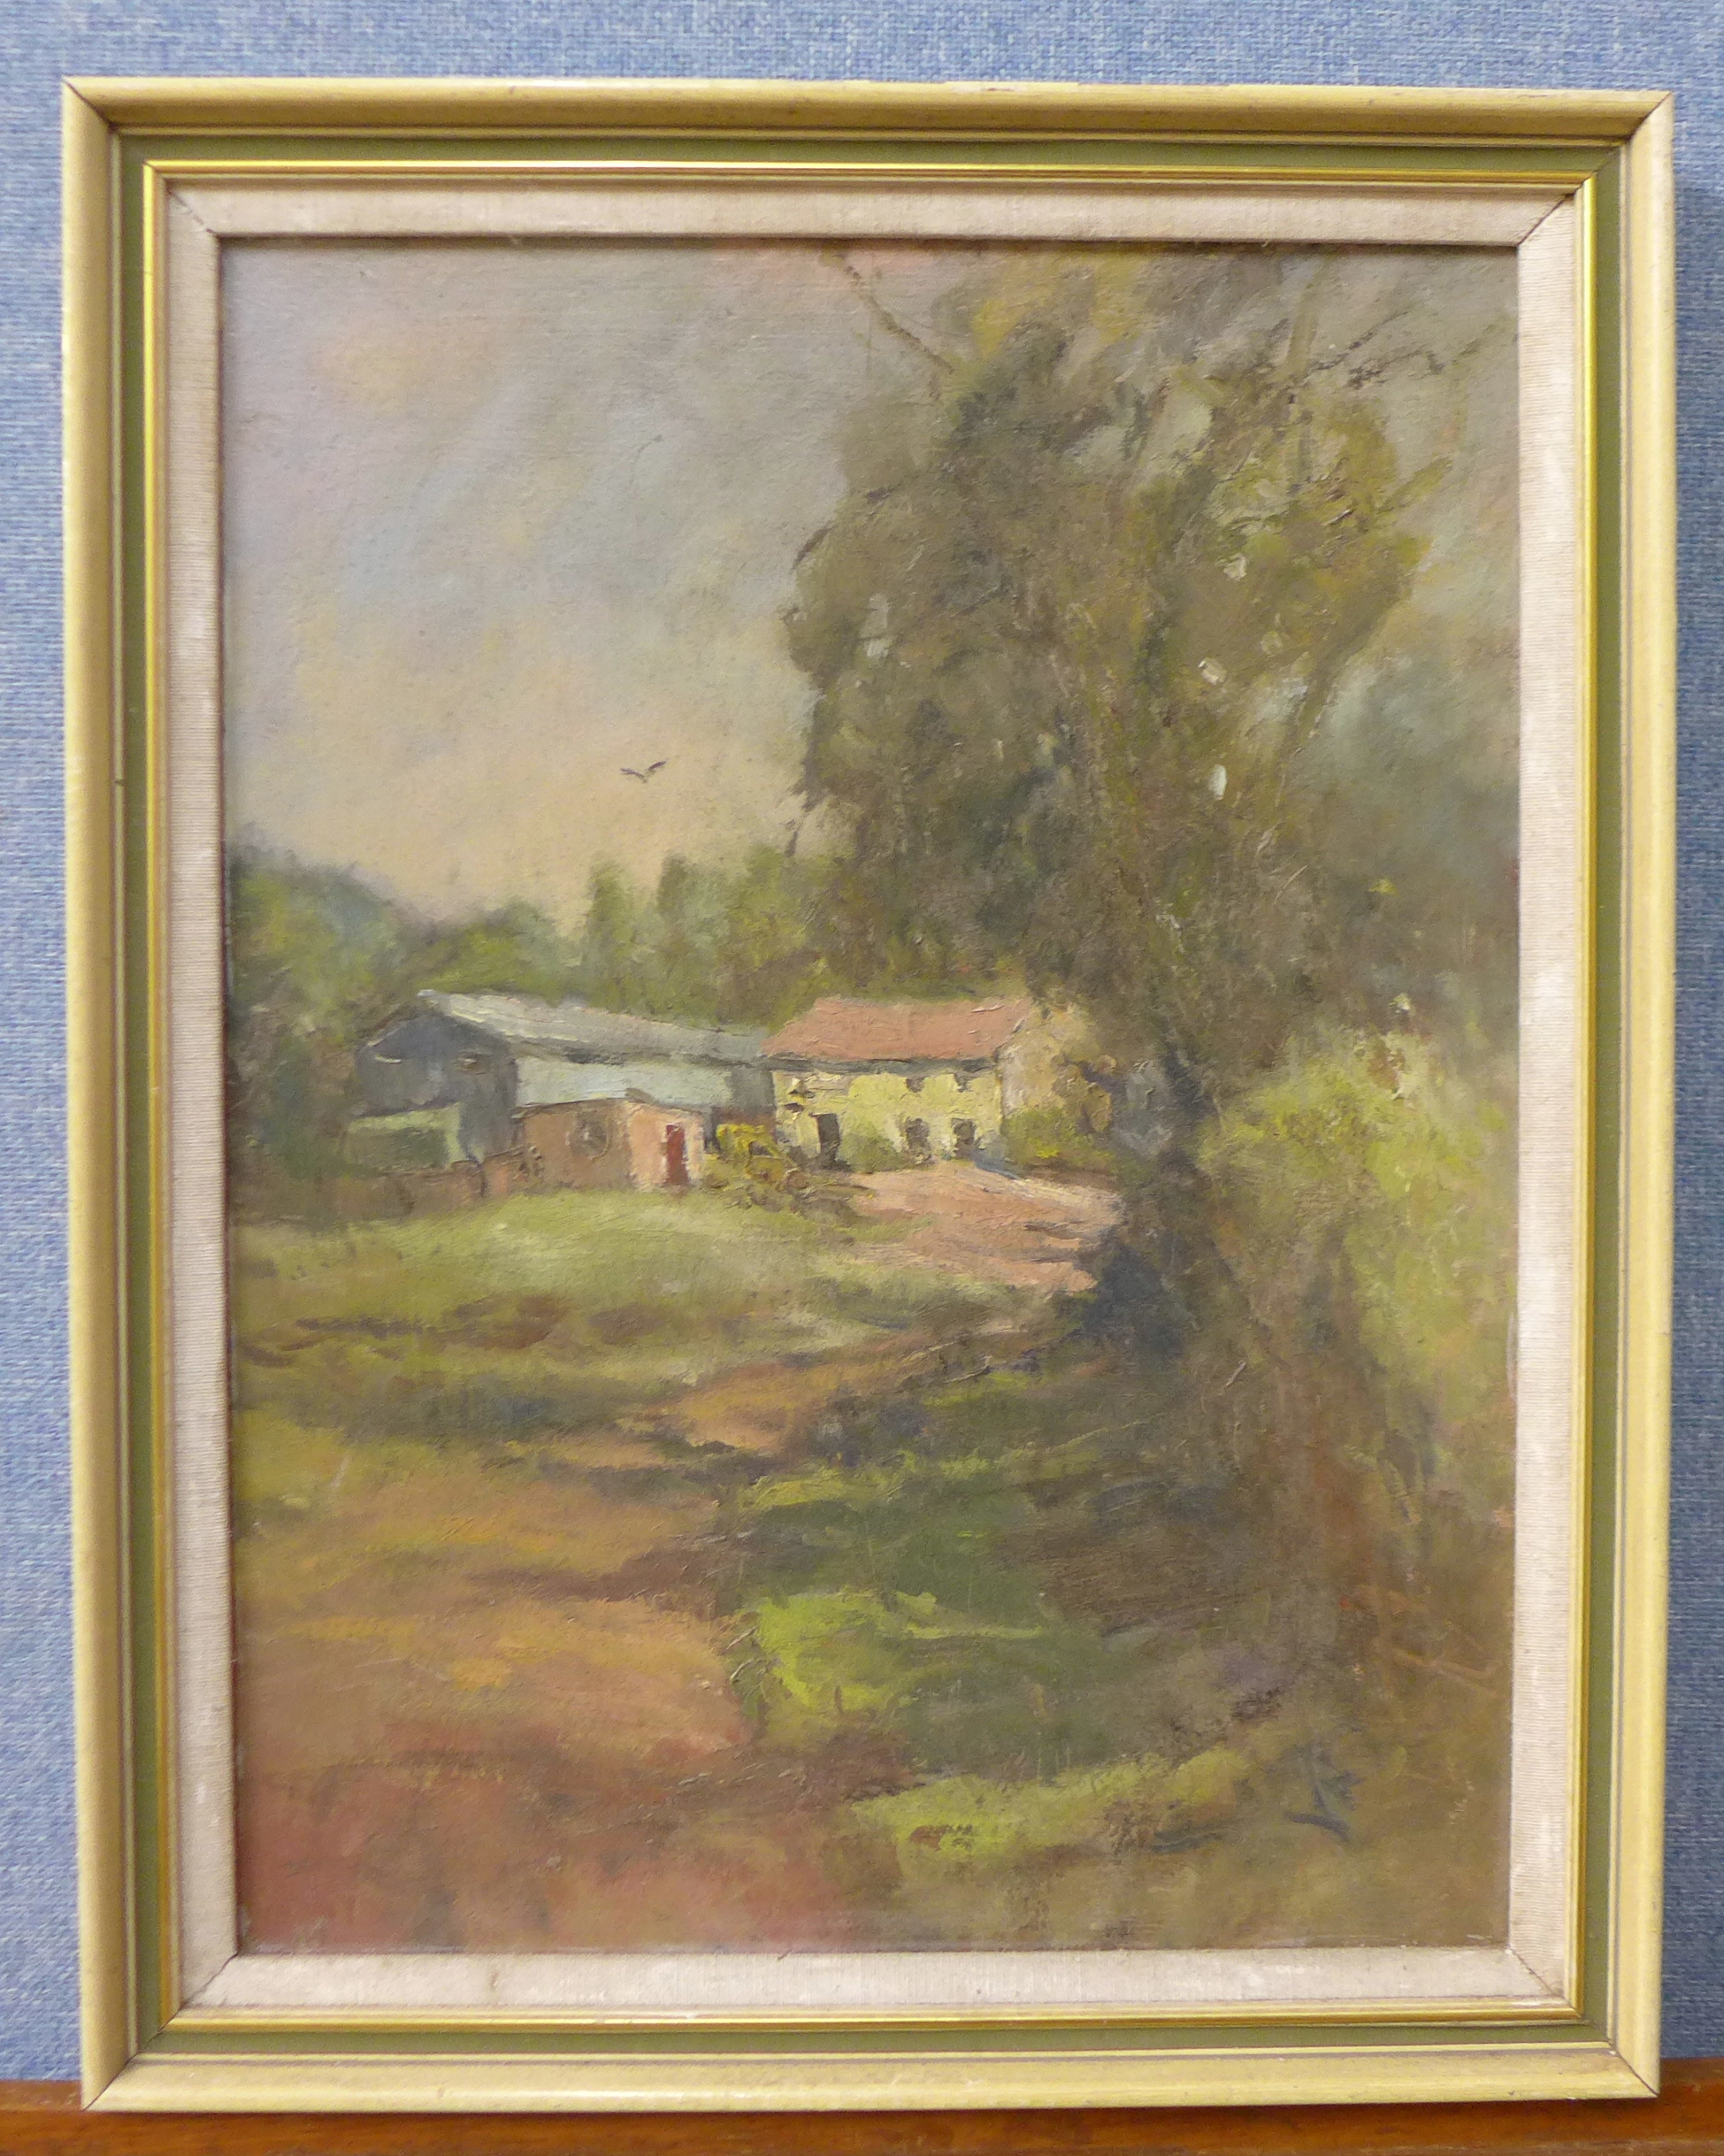 Lot 12 - John Richards, Horse Farm, Cresswell, oil on panel,